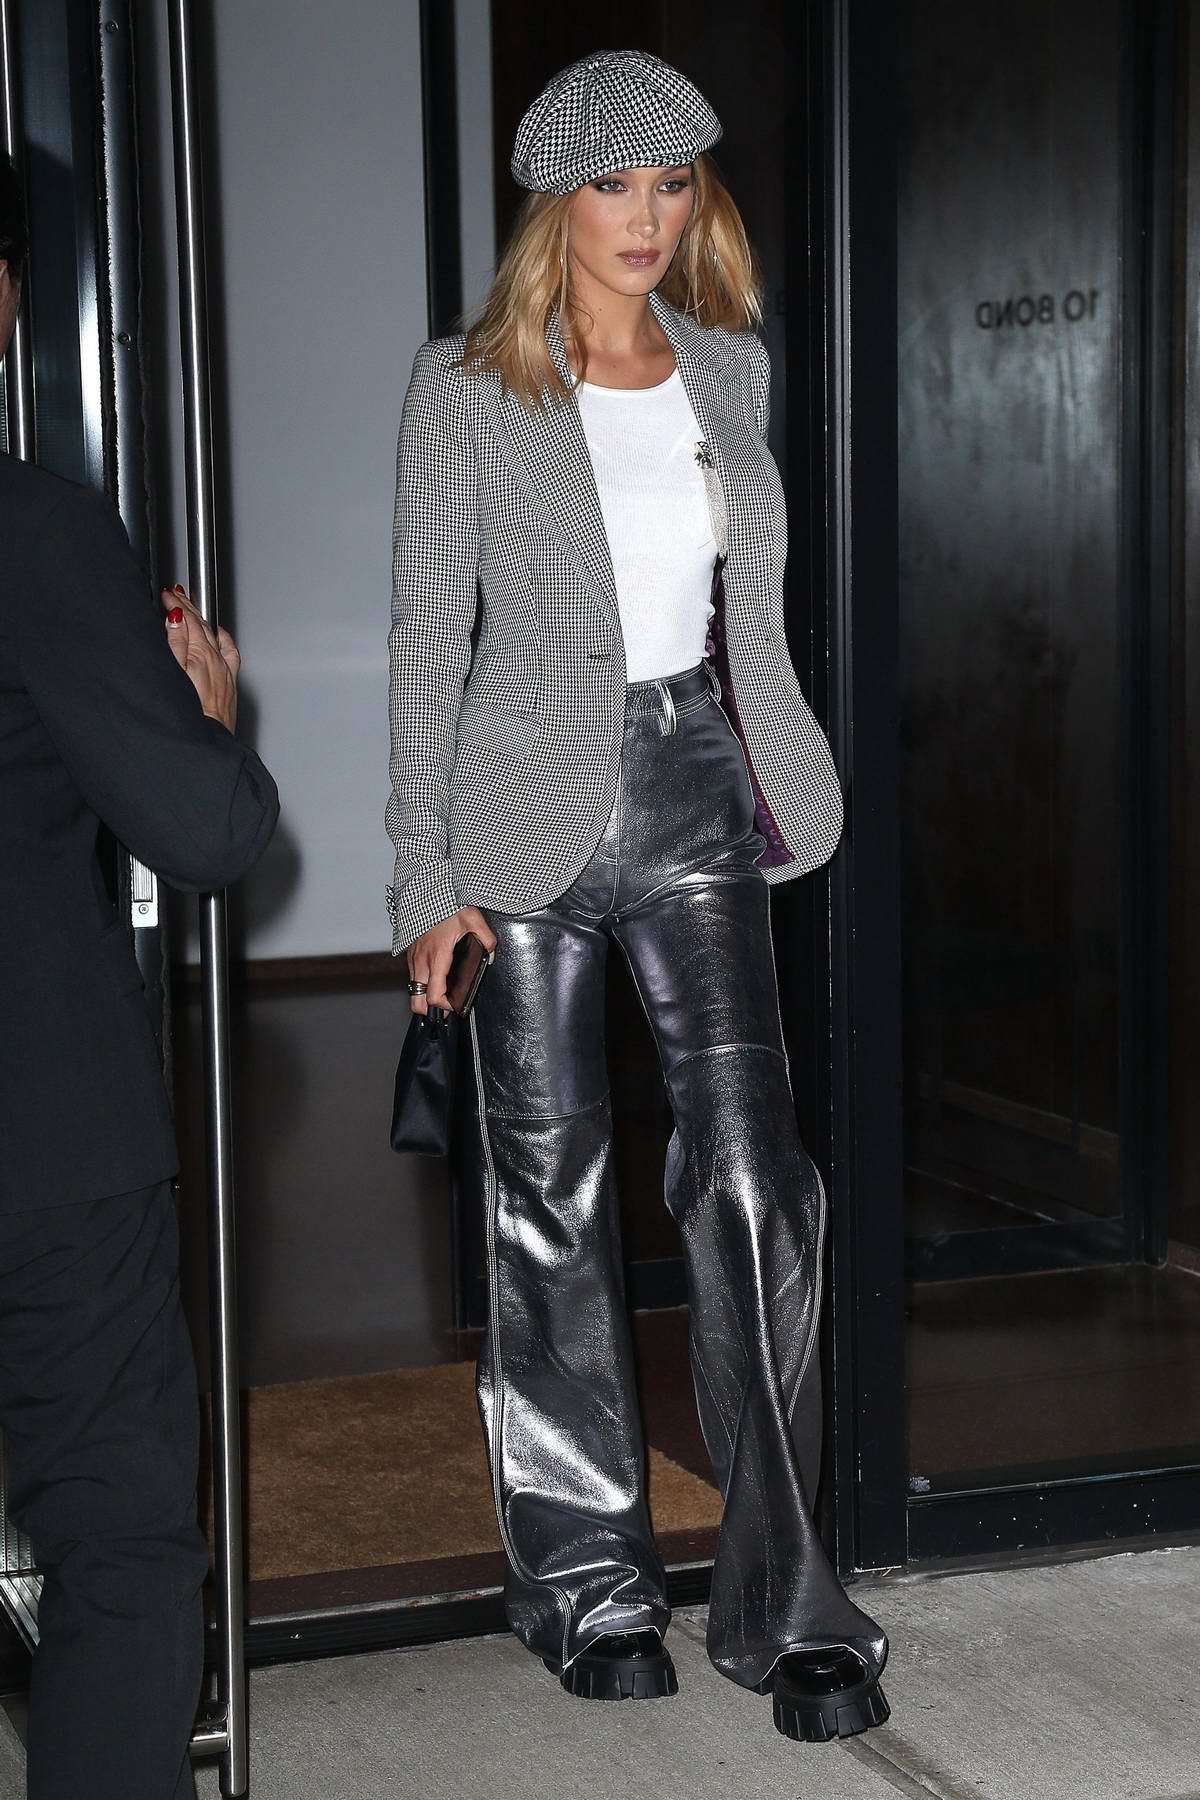 Bella Hadid looks stylish in a tweed blazer paired with metallic silver pants as she heads for a night out in New York City